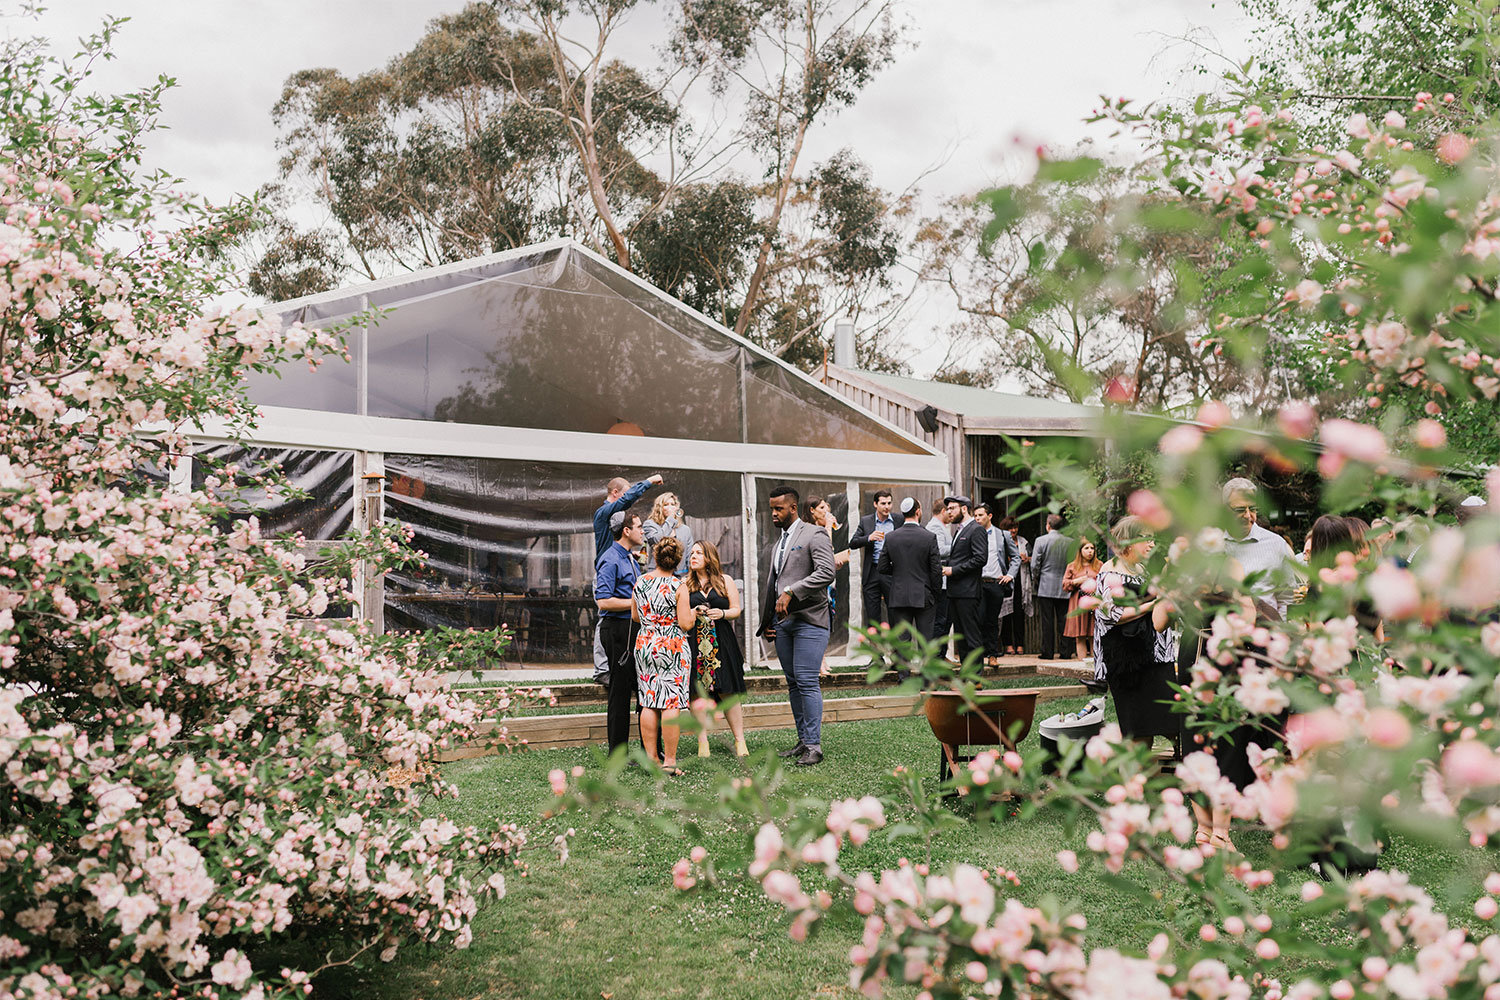 - Fusing the old and new, the rustic and the urbane, this venue is the essence of Wombat Hollow. With its views of the property's stunning gardens and untamed bush beyond, the Spring Meadow Marquee is a versatile permanent structure for dining, dancing and celebrating in style, and which can be decked out however you like. The marquee seamlessly flows from the adjoining Big Shed, clad in timber and tin and adding both space and charm to the venue. Here, vintage candleholders and agricultural artefacts lining the walls provide all the embellishment you could wish for – simply add some beautiful floral arrangements to the tables, light some candles and let it glow.